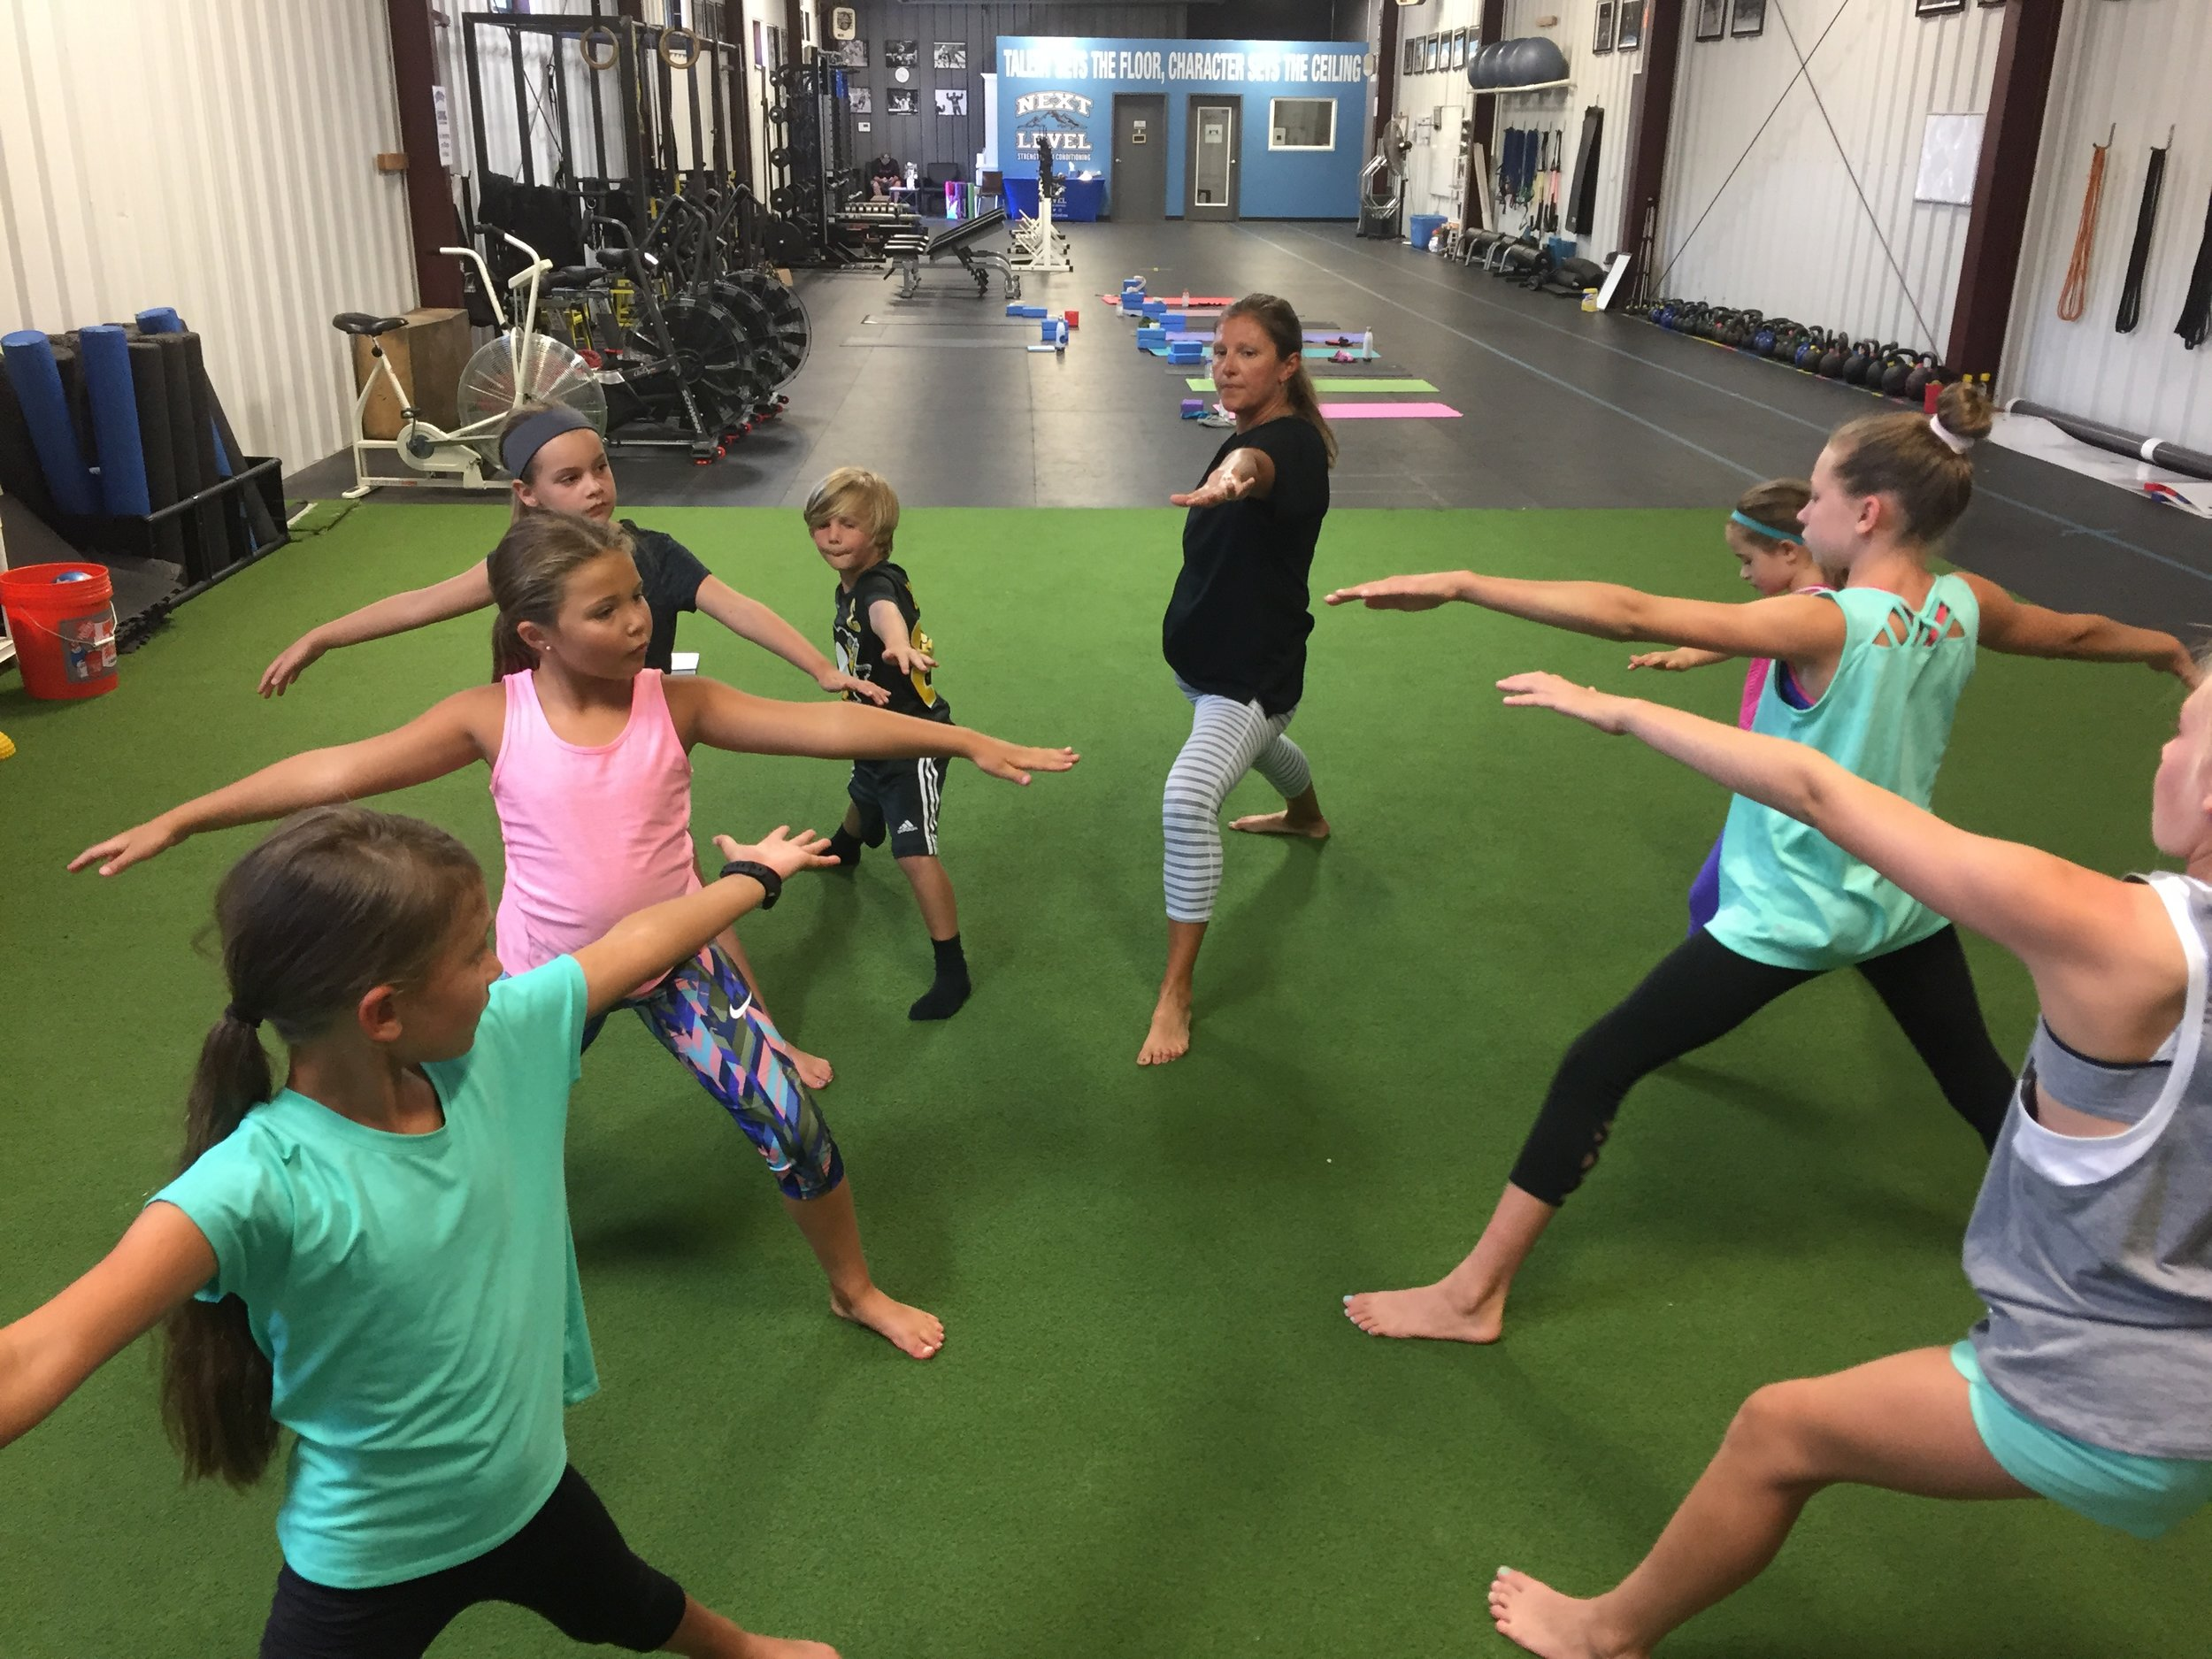 Yoga for Athletes (youth) - Sunday, 9/16 @ 4PM. Awesome class led by 2 certified instructors. Mobility, flexibility, strengthening, breath work and more for youth athletes (ages 8-13). Enroll here.